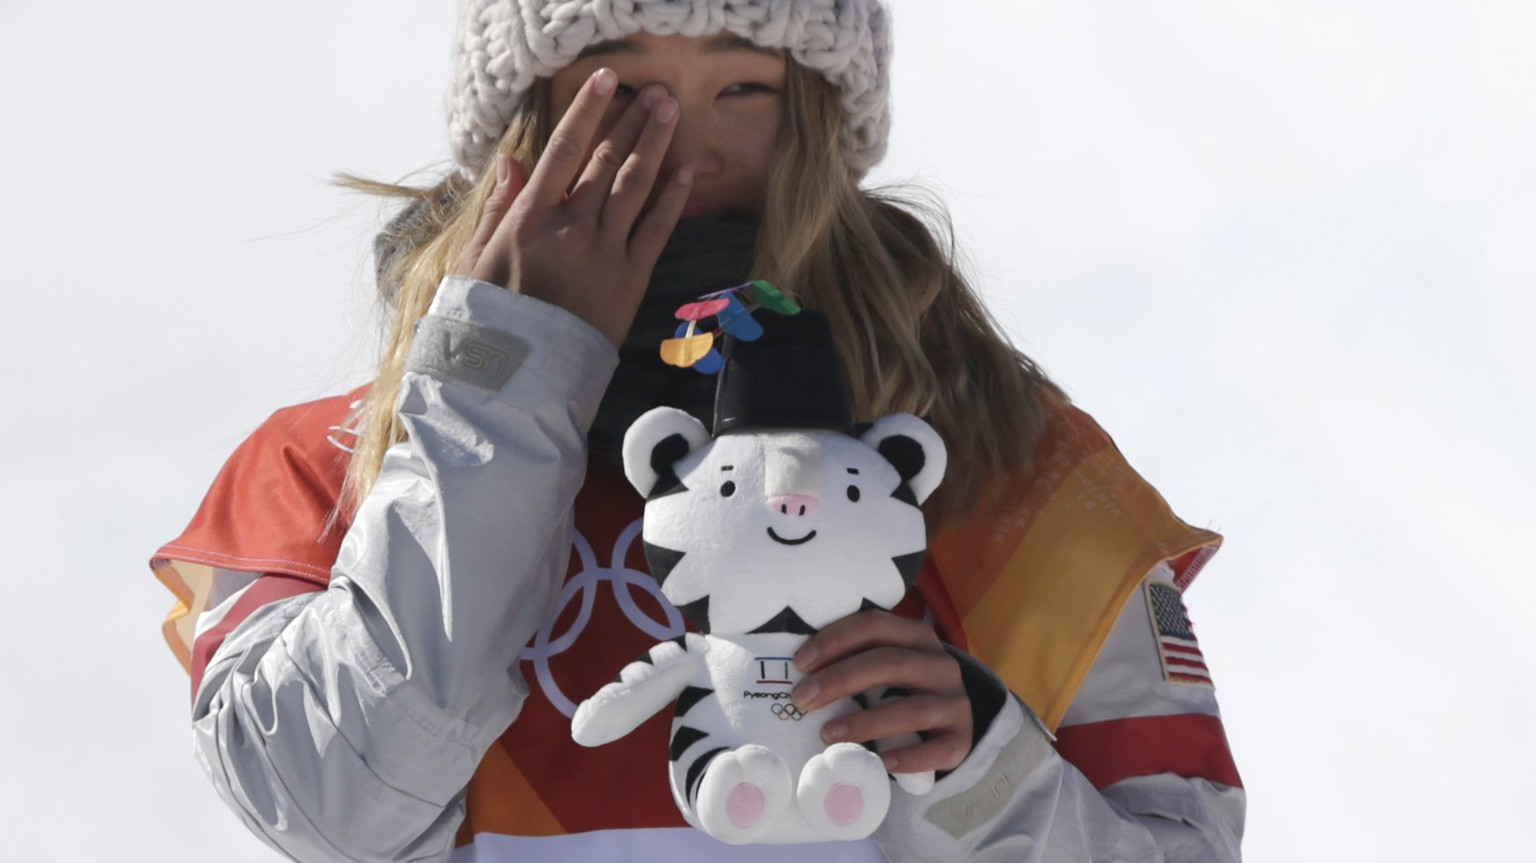 epa06519513 Gold medalist in first place, Chloe Kim of the US reacts at the venue ceremony for the winners of the Women's Snowboard Halfpipe final at the Bokwang Phoenix Park during the PyeongChang 2018 Olympic Games, South Korea, 13 February 2018.  EPA/FAZRY ISMAIL